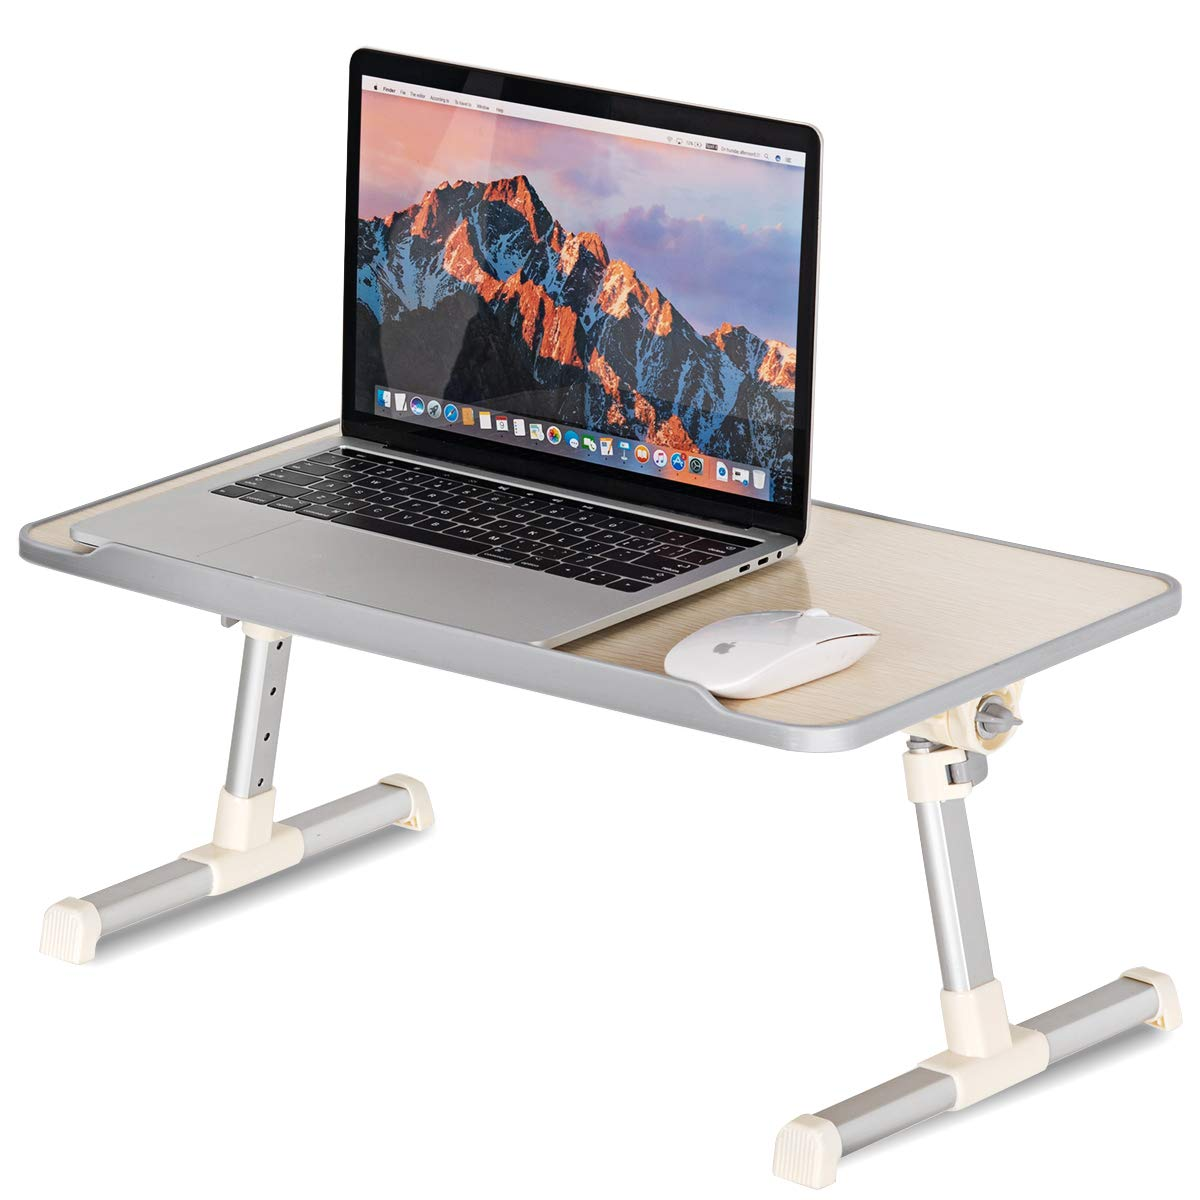 Tangkula Bed Table Adjustable Laptop Table, Portable Standing Bed Desk with Built-in Fan Foldable Legs, Notebook Stand Reading Holder for Couch & Floor Sofa Breakfast Tray, Computer Riser